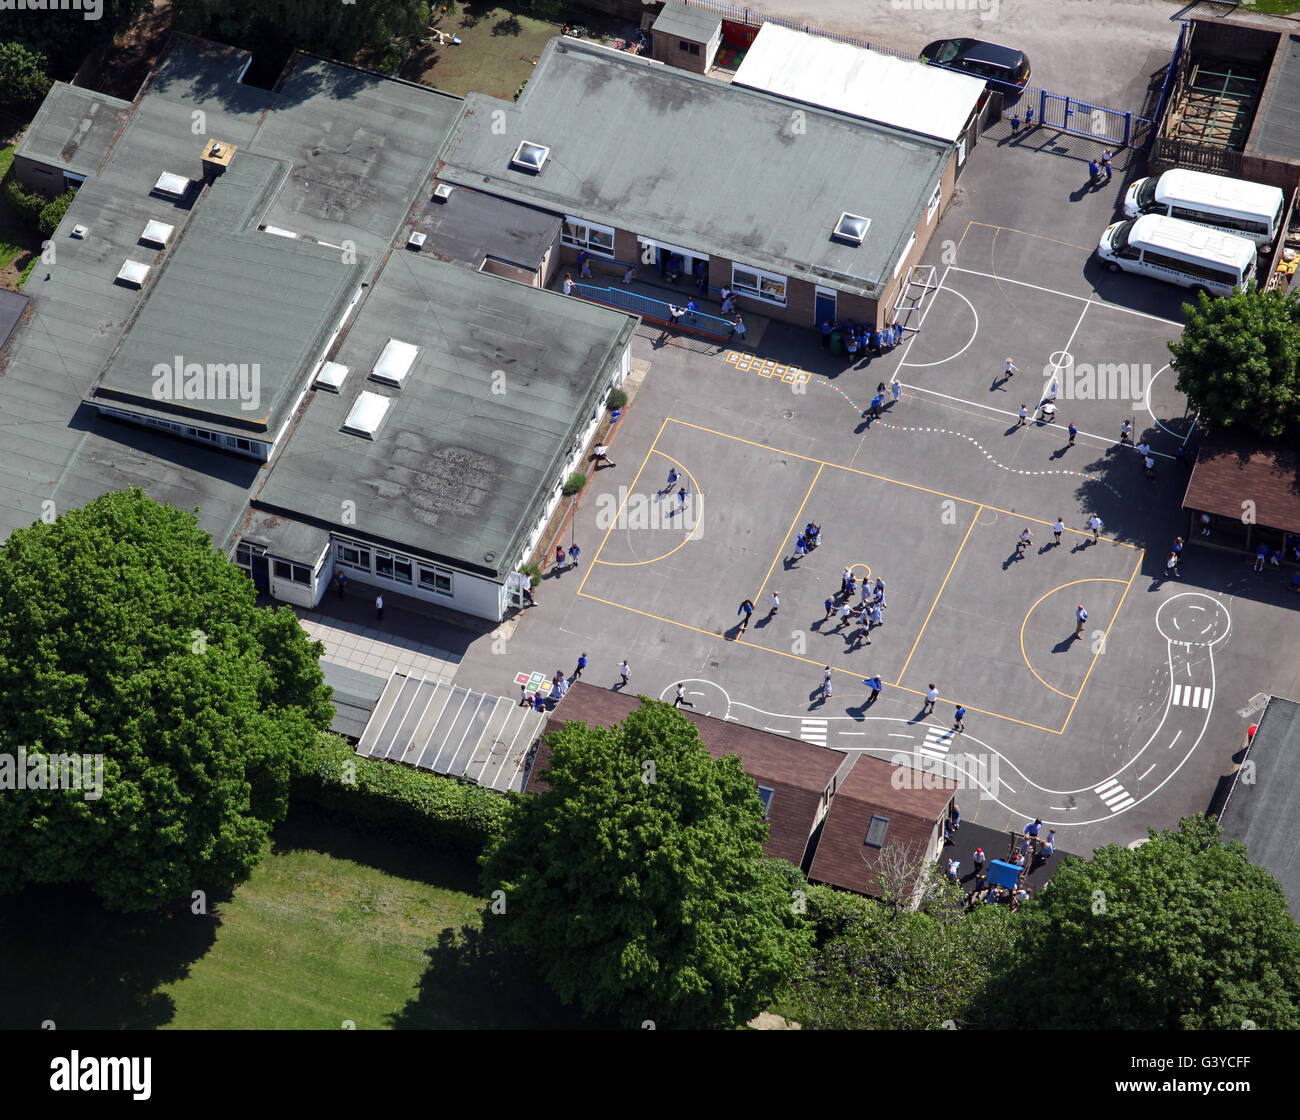 aerial view of a school playground with children playing, England, UK - Stock Image